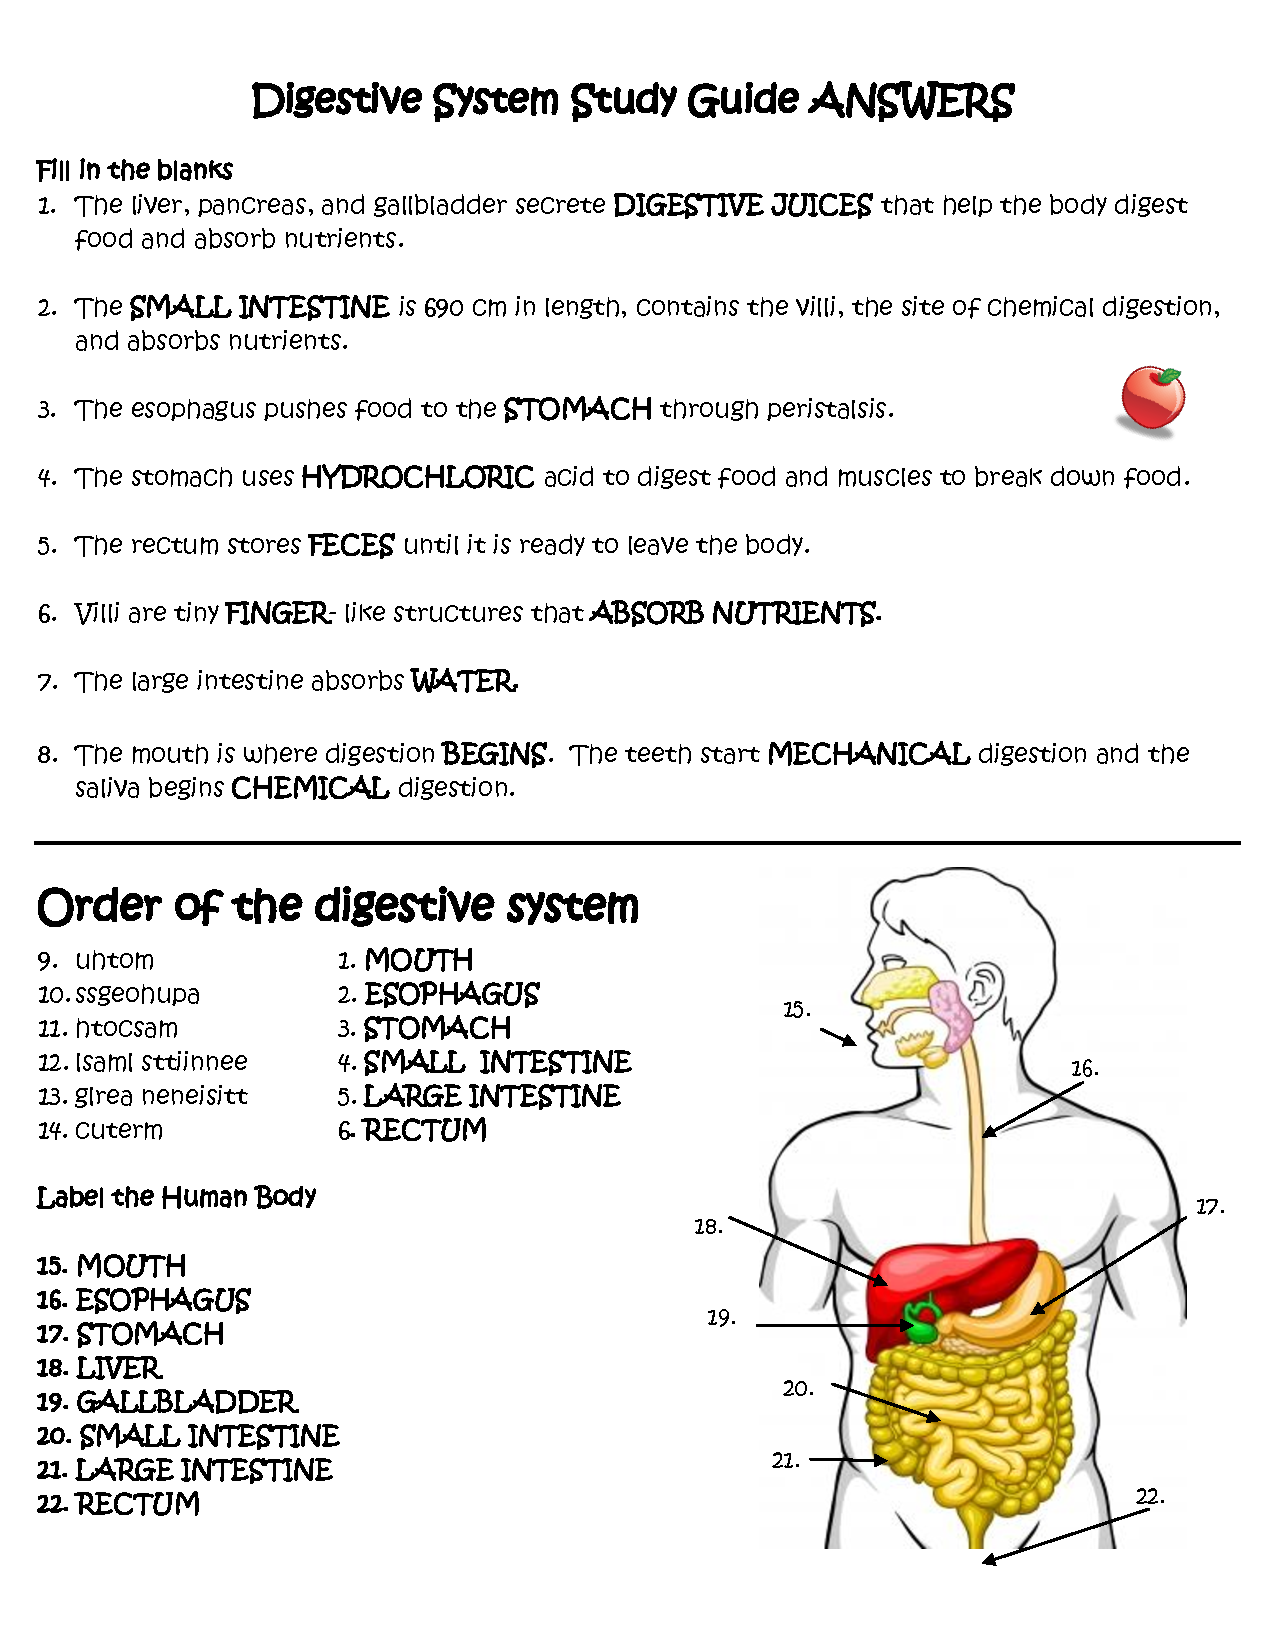 Image For Digestive System Study Guide